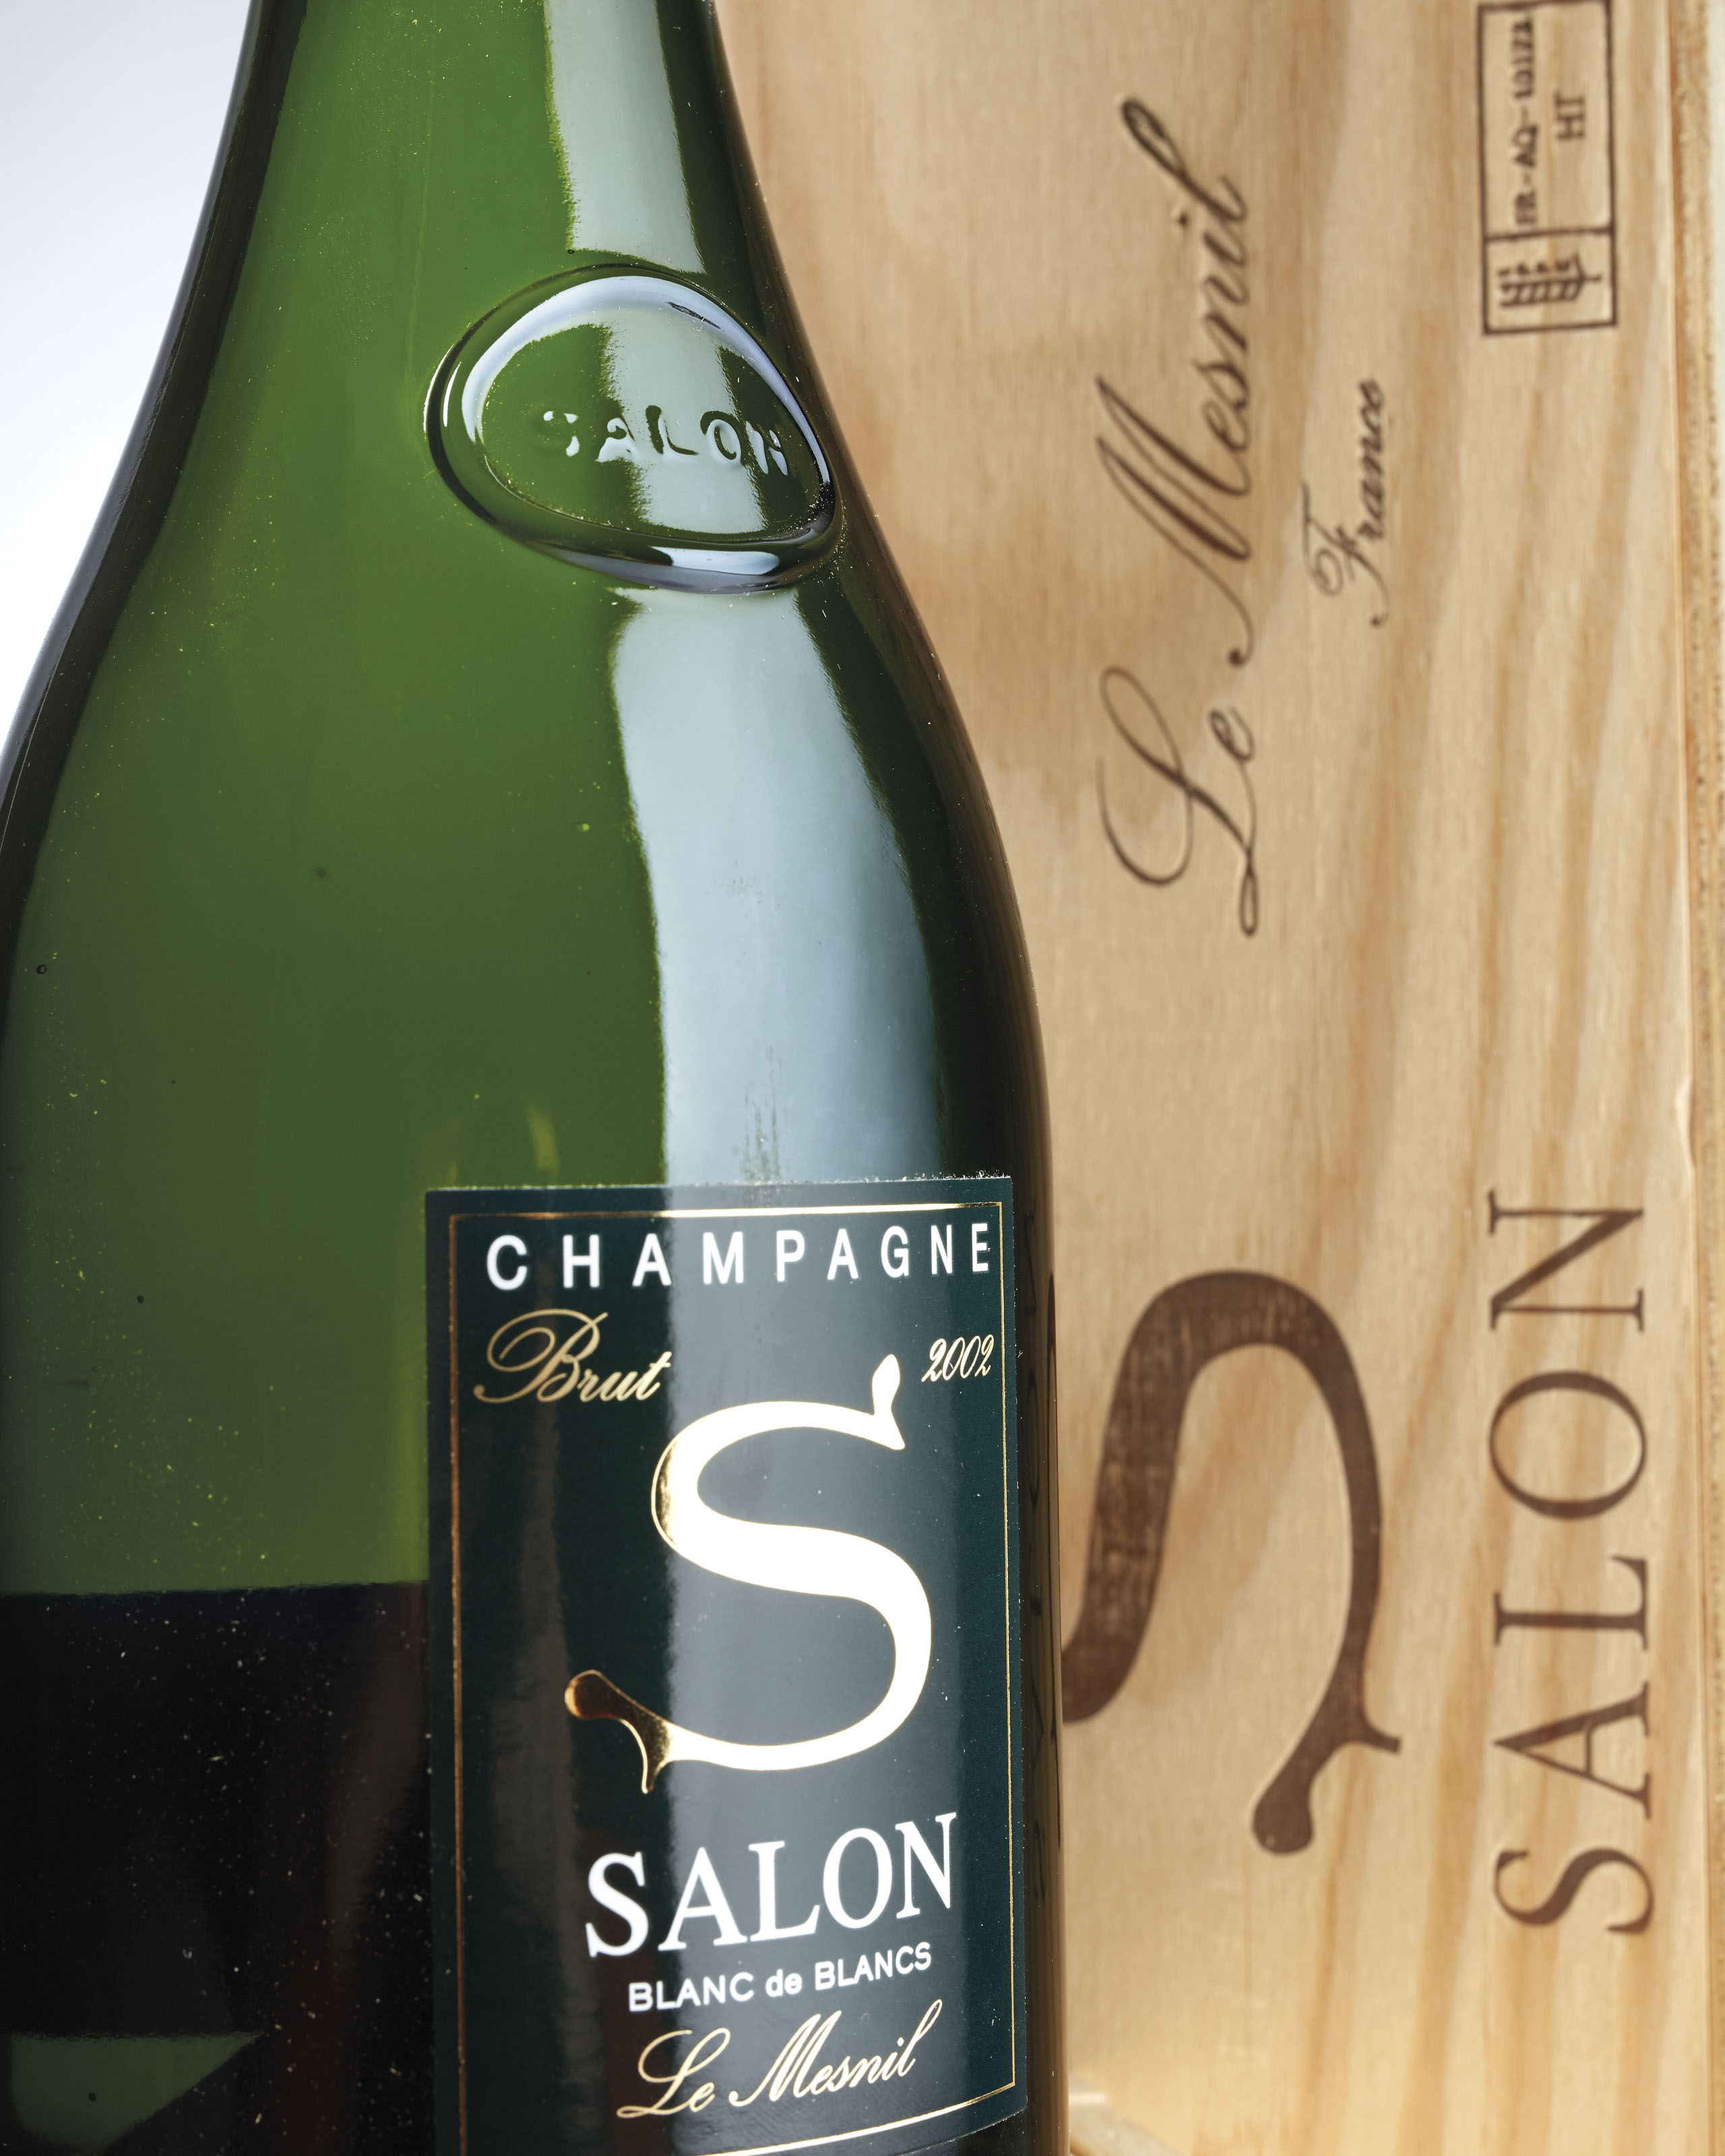 Salon Le Mesnil Blanc de Blancs 2002 | 2 bottles per lot | 2002, Le ...